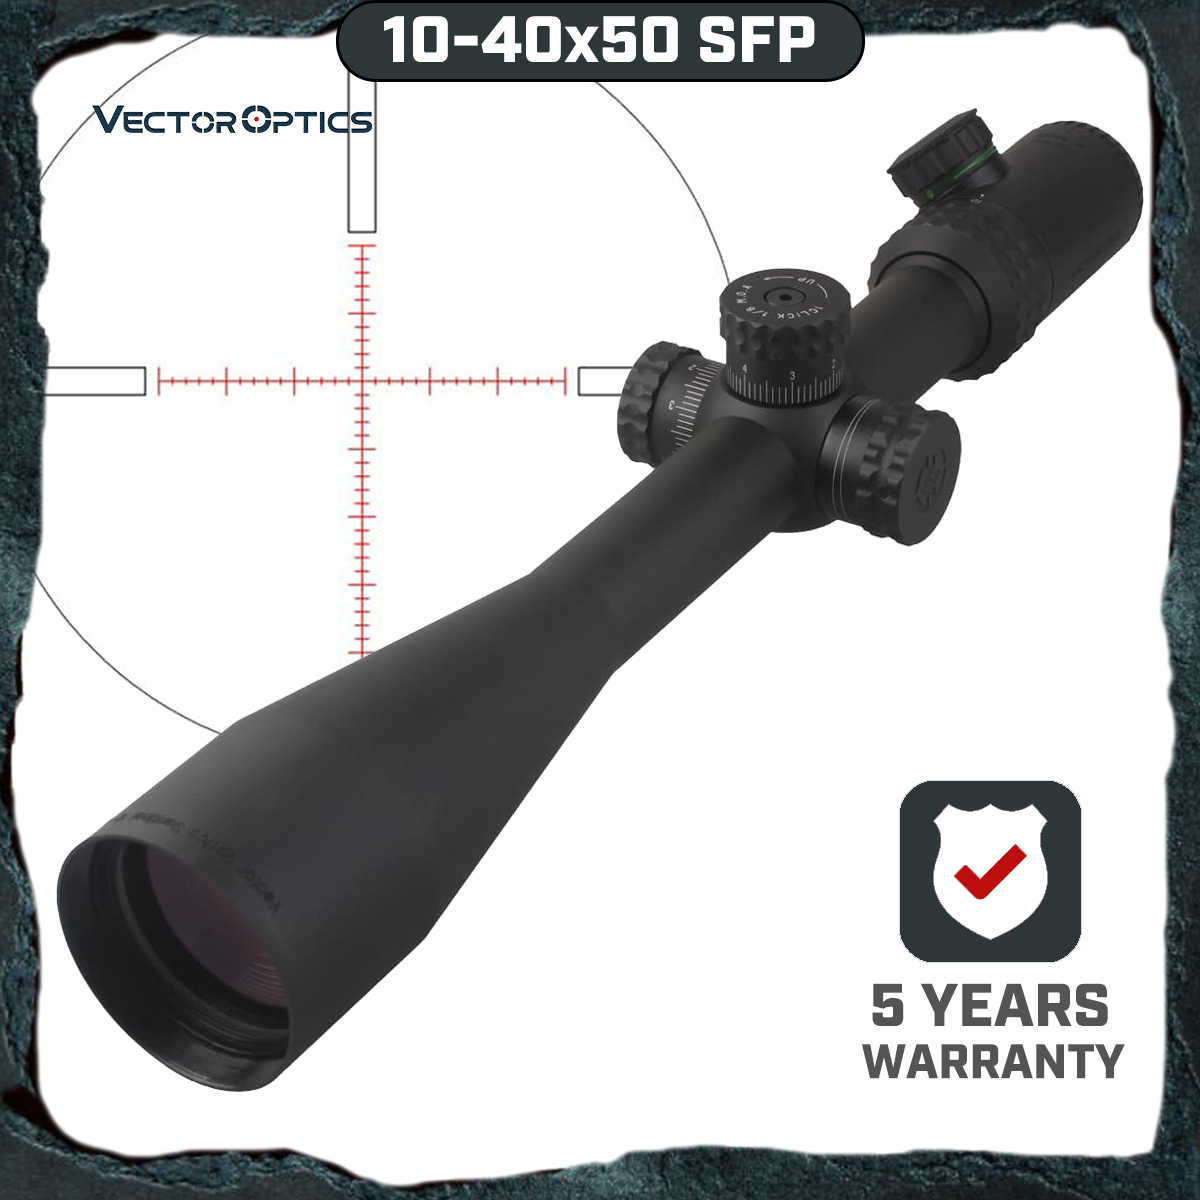 וקטור אופטיקה Gen 2 סנטינל 10-40x50 ירי צלף Riflescope היקף עם מואר MP Reticle עבור יקר Sight ציד